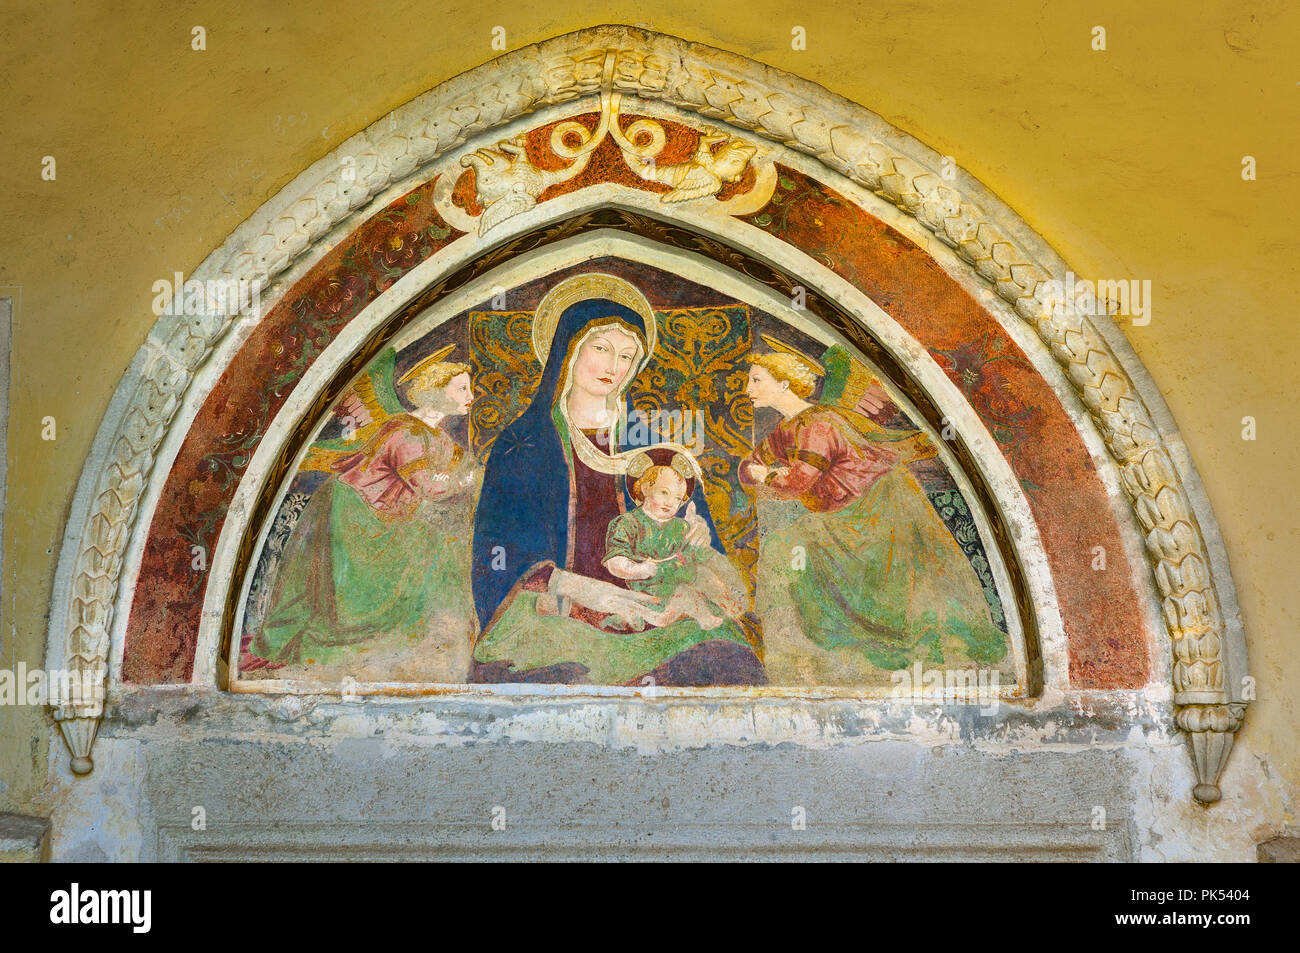 depiction of the Madonna and Child between two adoring Angels, Abruzzo - Stock Image